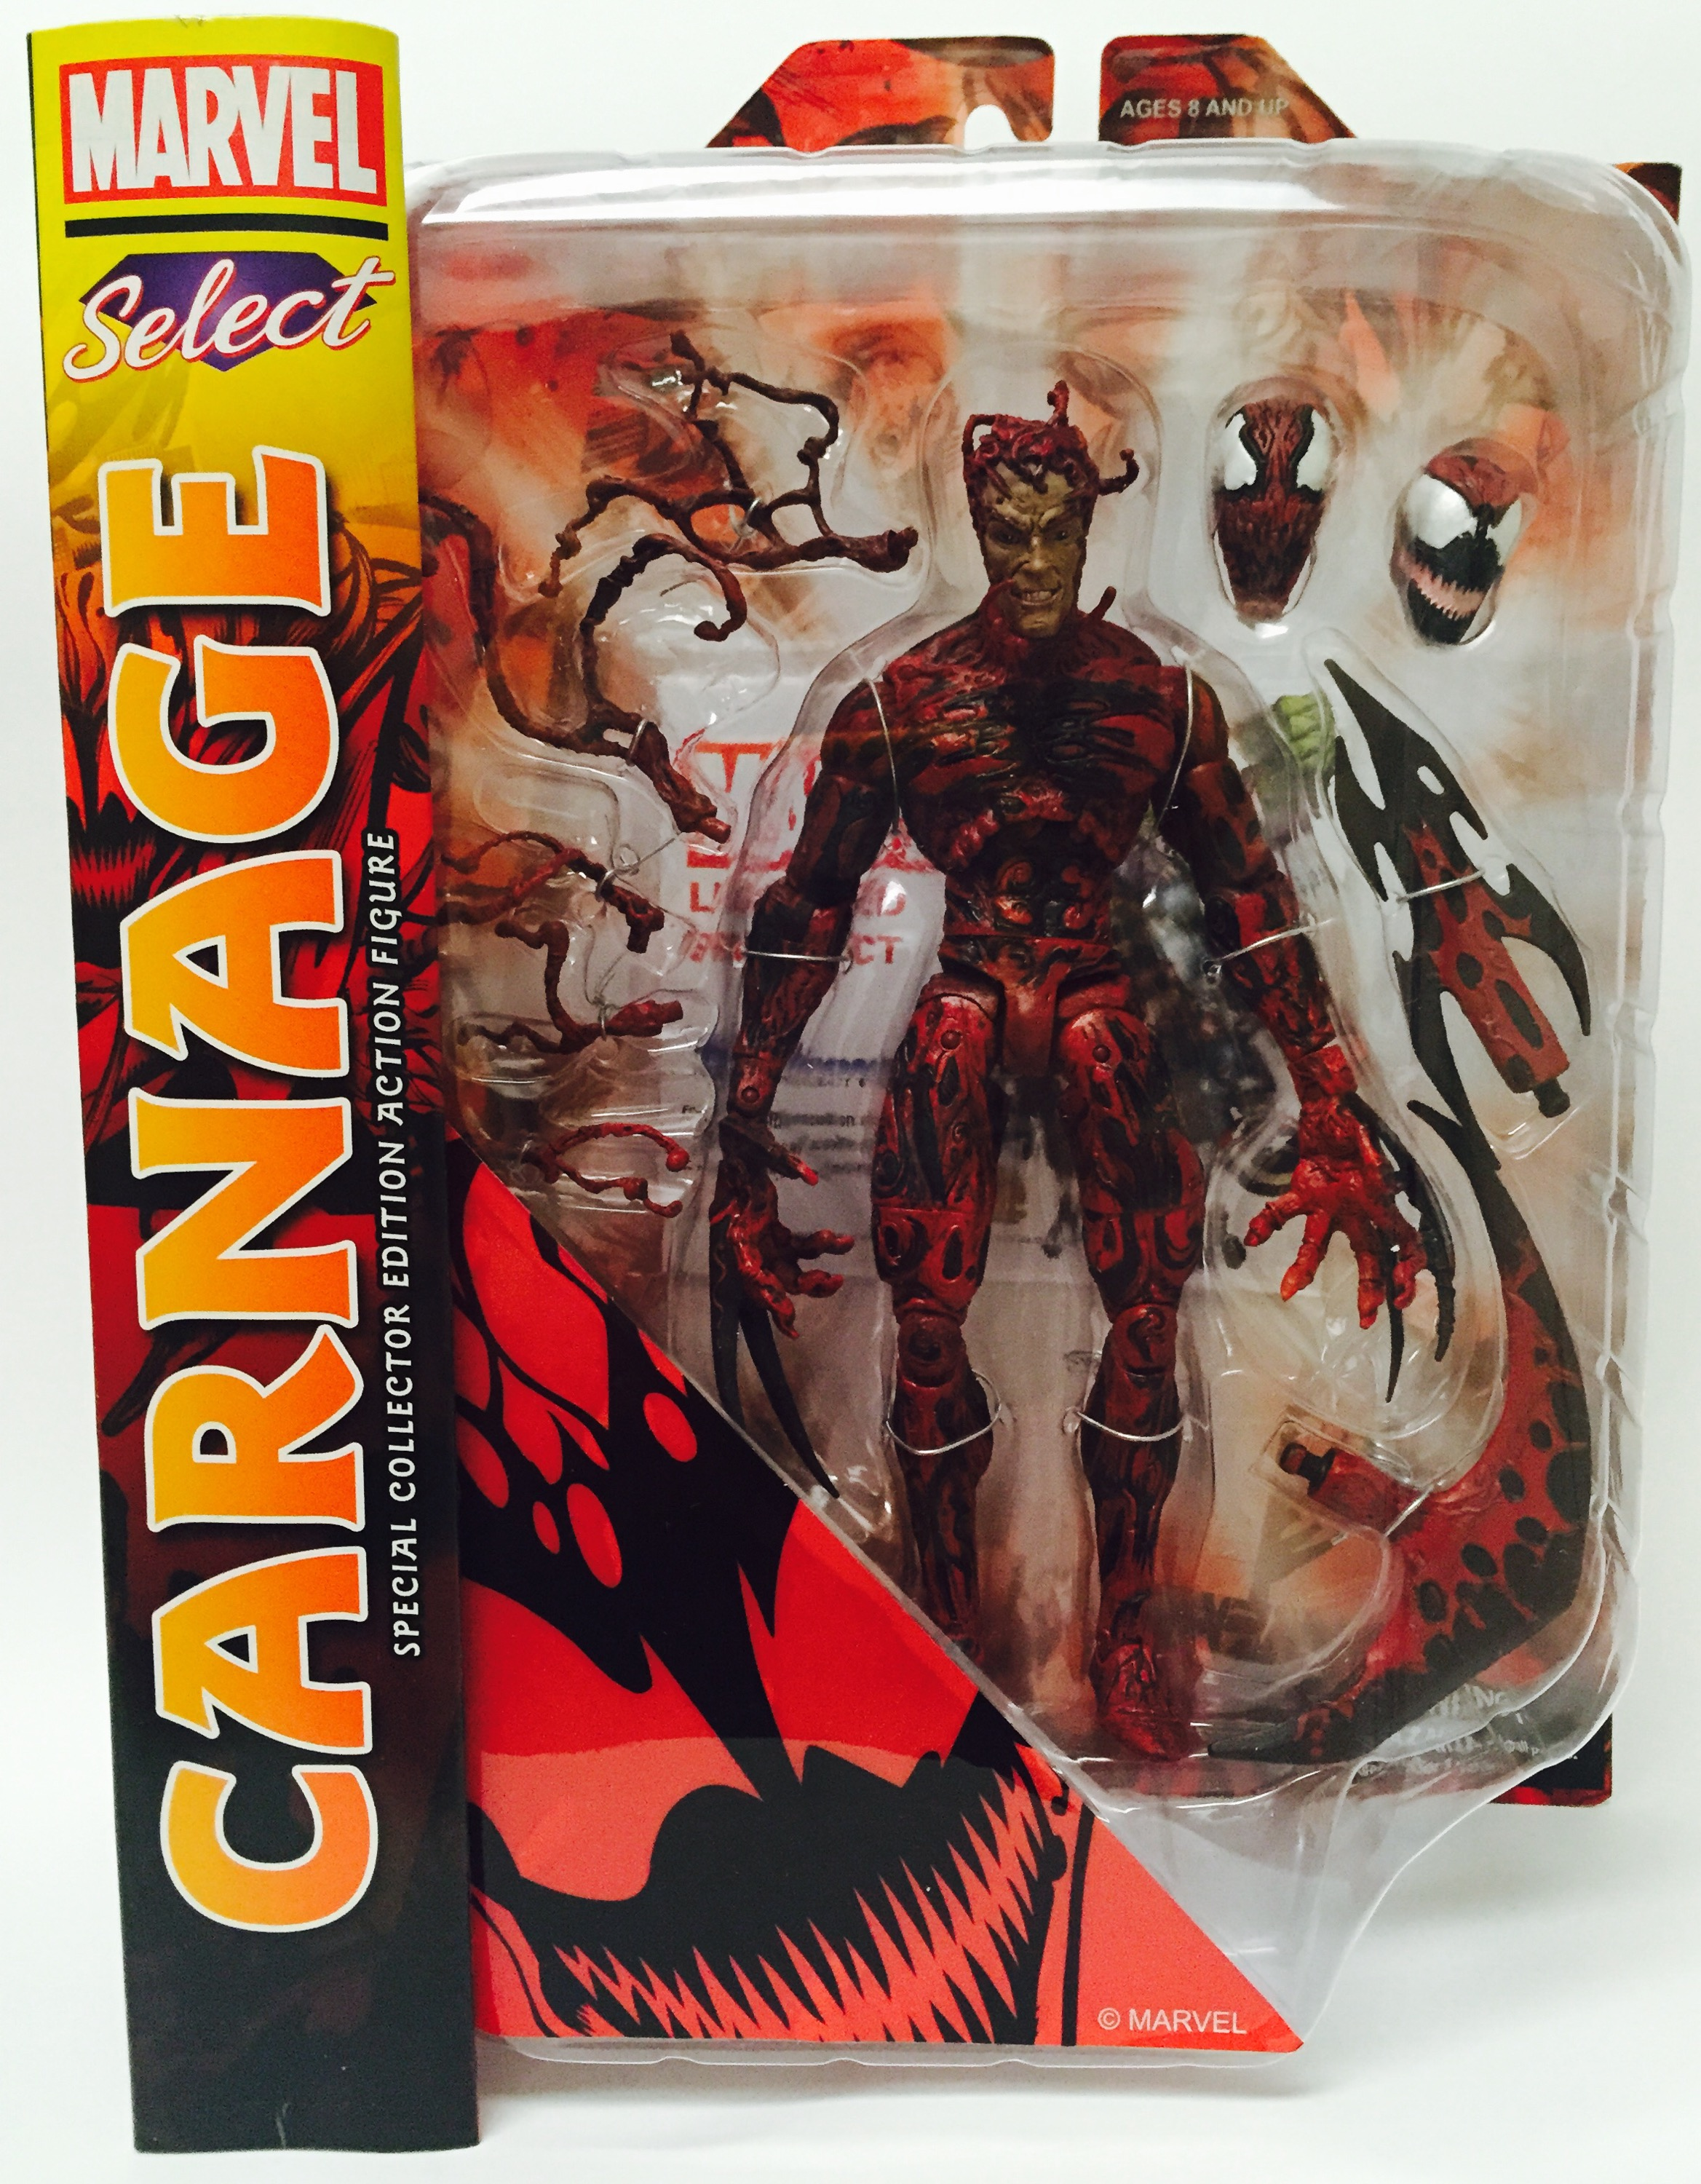 Marvel Select Carnage Reissue Up for PO! Review & Photos ...Ultimate Carnage Marvel Select